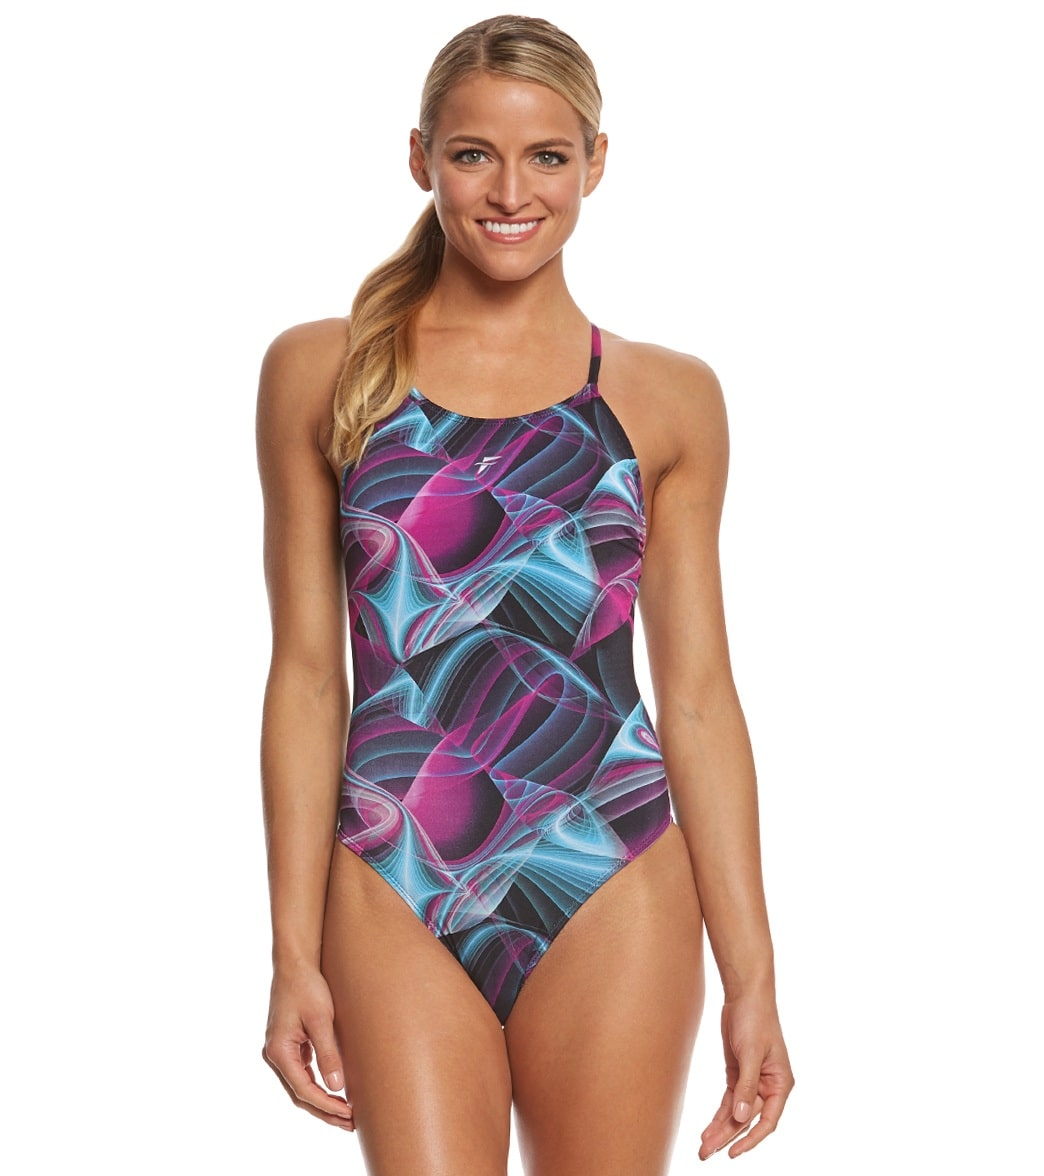 0f5cdce602 fabiola molina Women s Electric Swirl One Piece Swimsuit at SwimOutlet.com  - Free Shipping